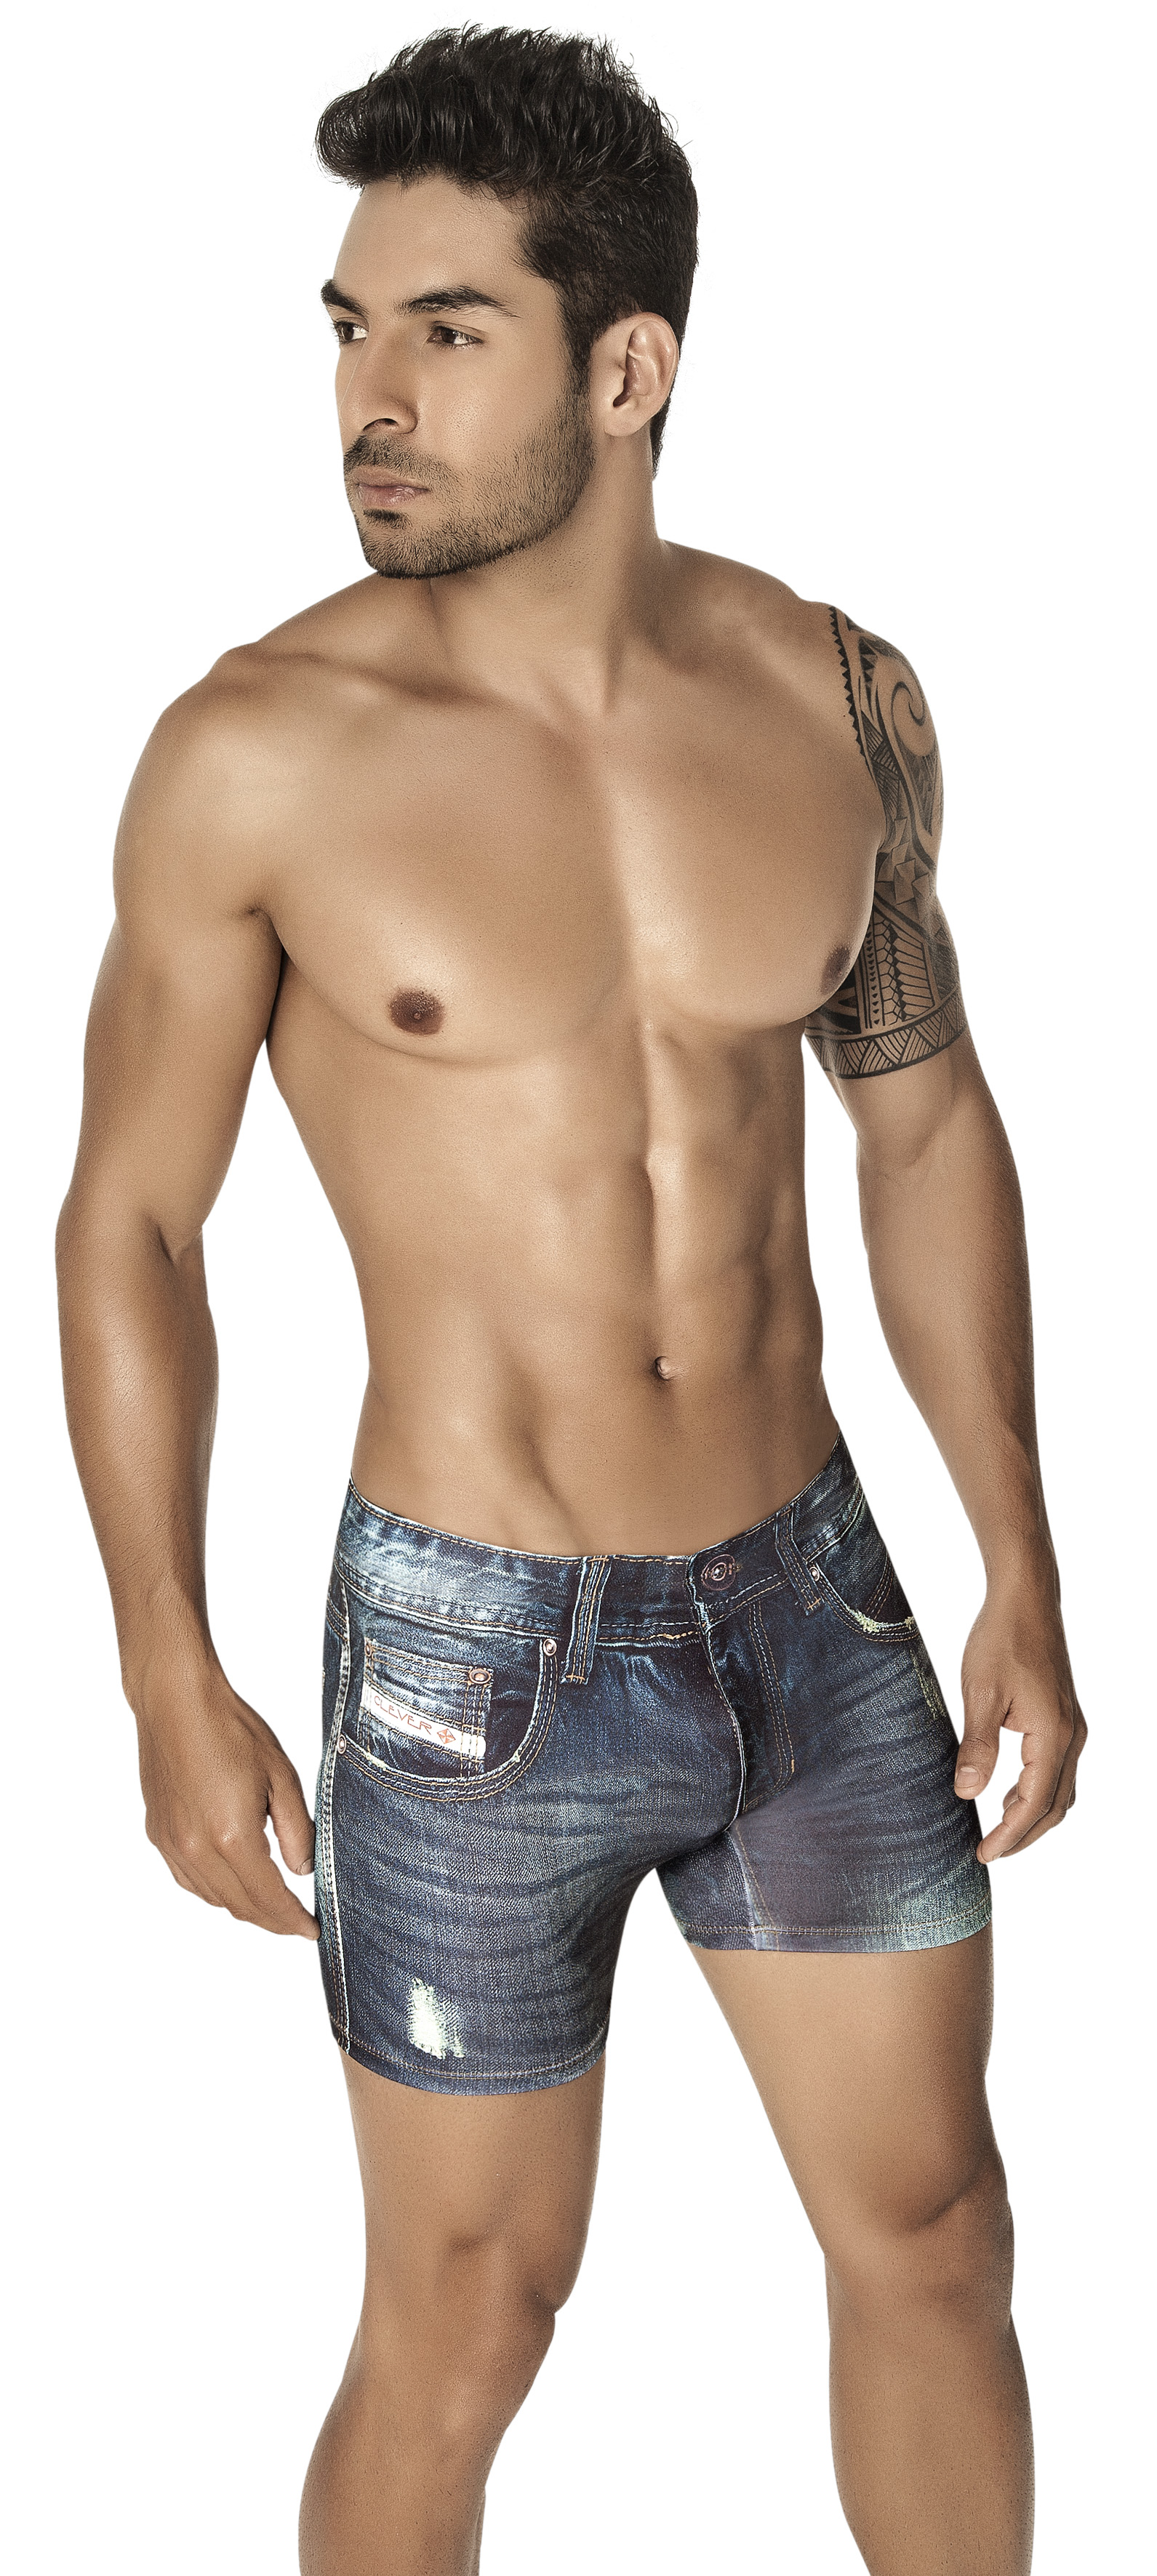 Faux denim jeans boxer briefs 2201 Edmonton